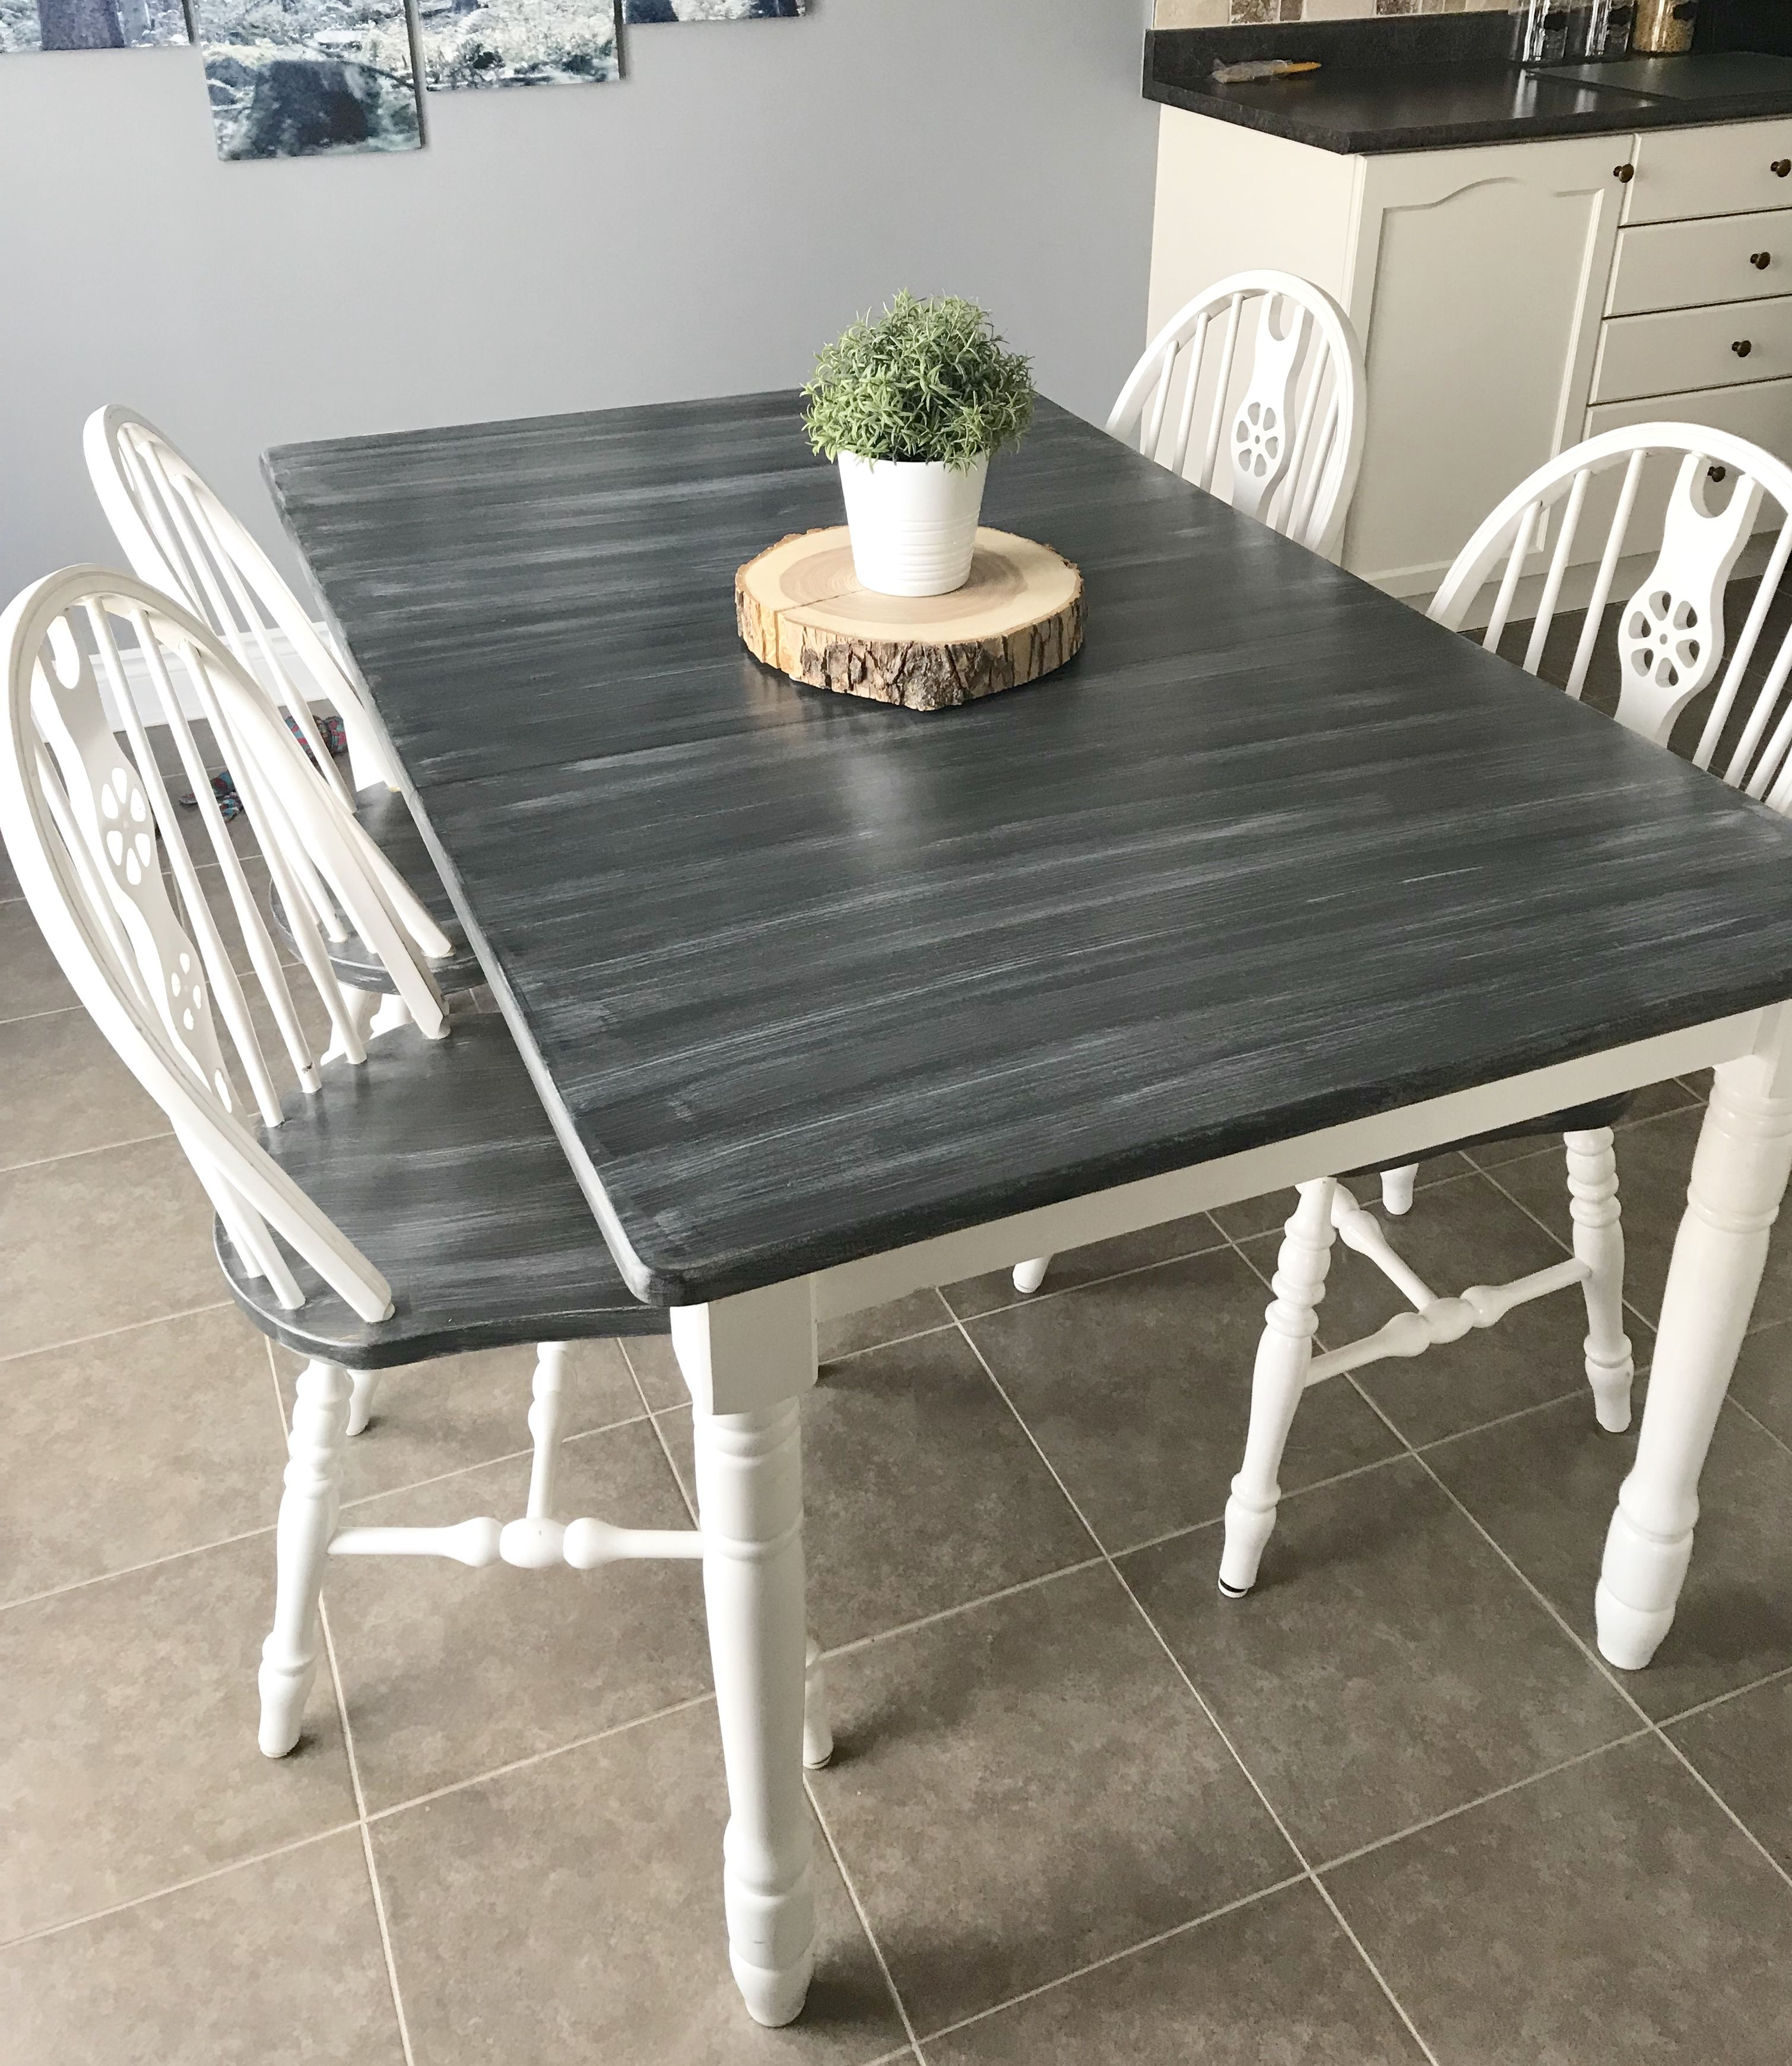 Chalk Painted Dining Set Chalk Paint Dining Table Chalk Paint Dining Room Table Chalk Paint Kitchen Table